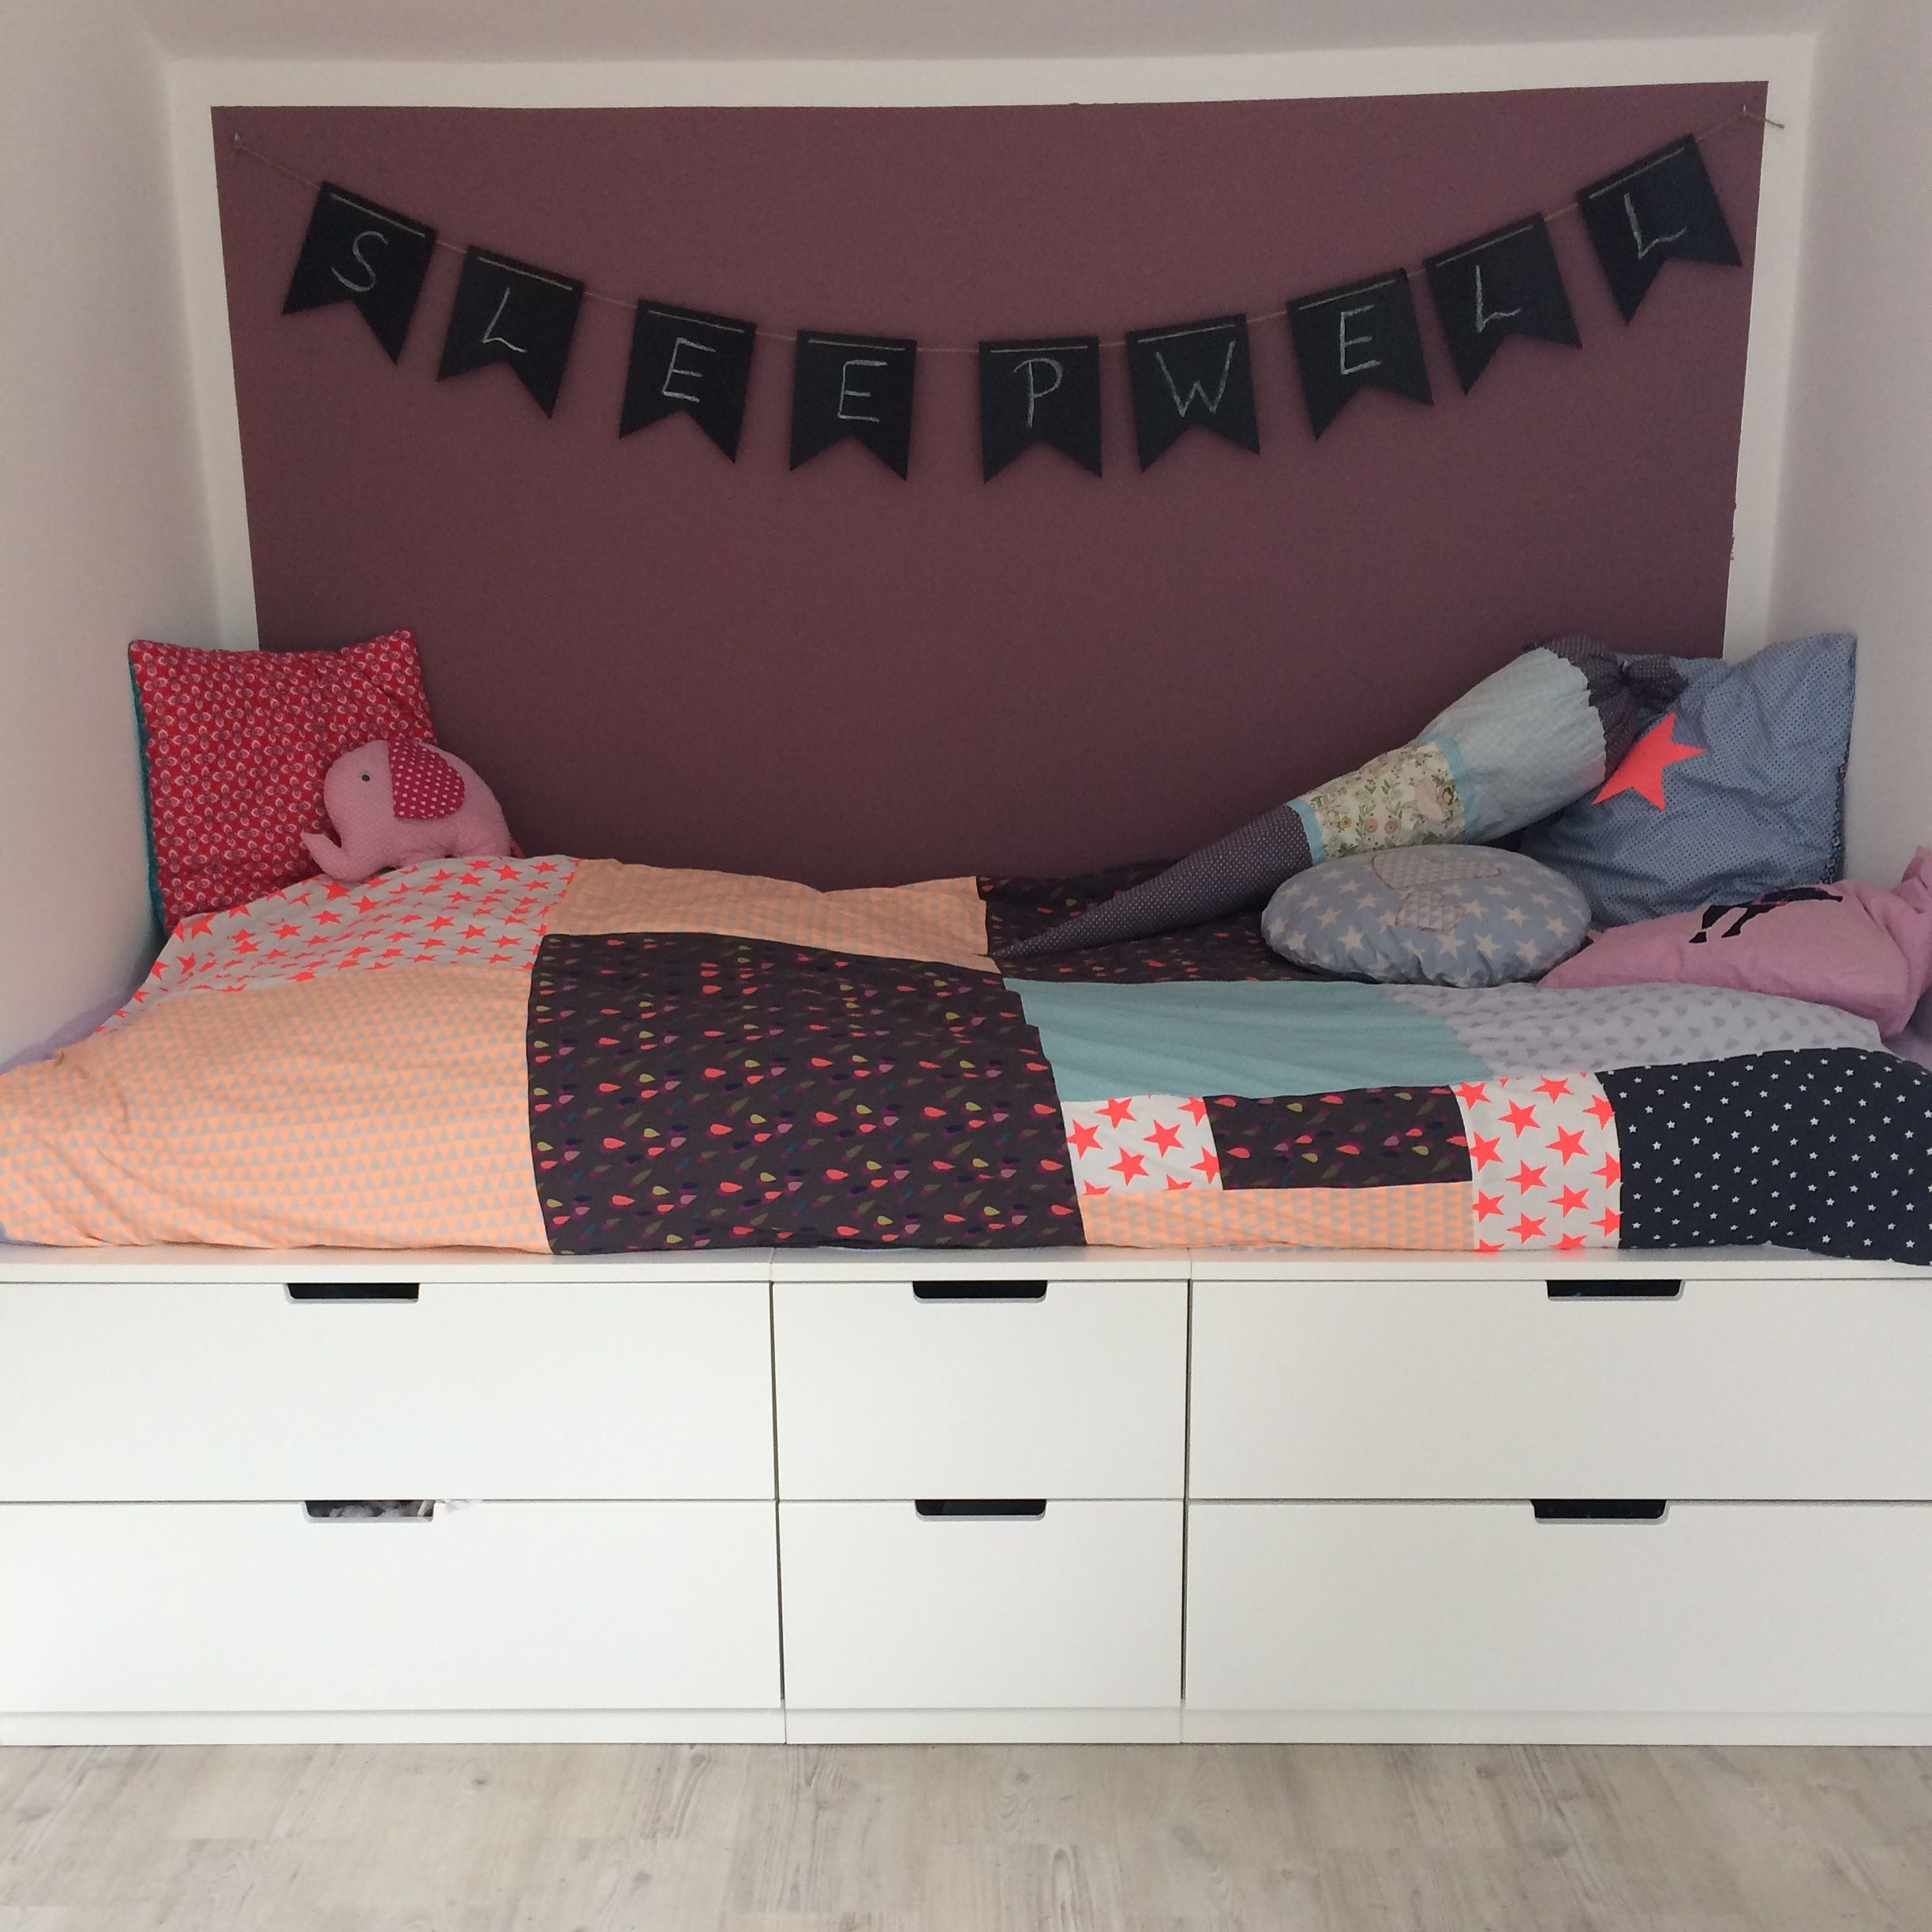 bett auf nordli kommoden ikeahacks kinderzimmer pinterest kinderzimmer ikea. Black Bedroom Furniture Sets. Home Design Ideas